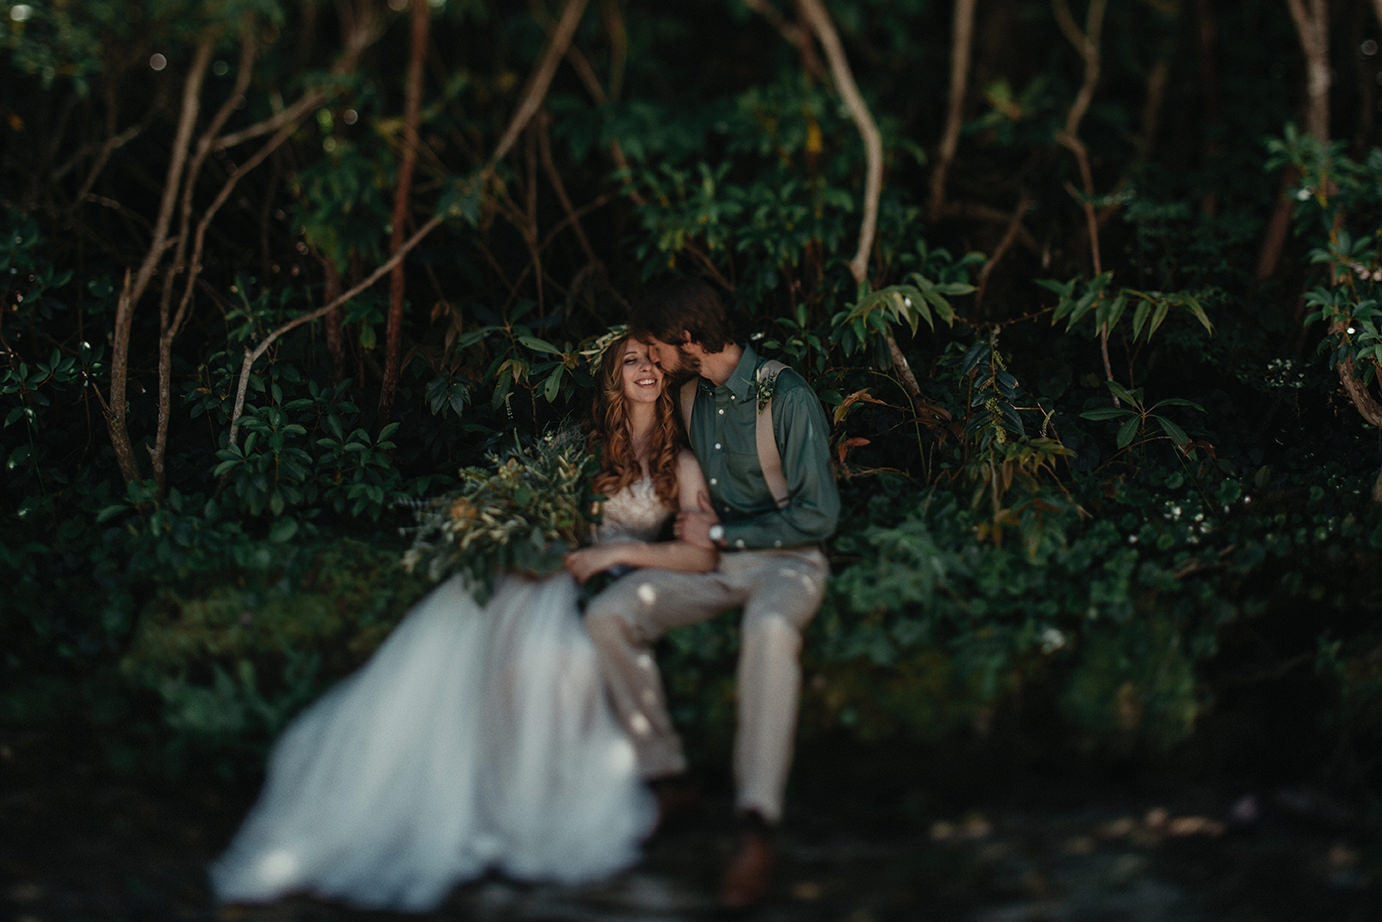 Bride and groom's wedding in the forest.